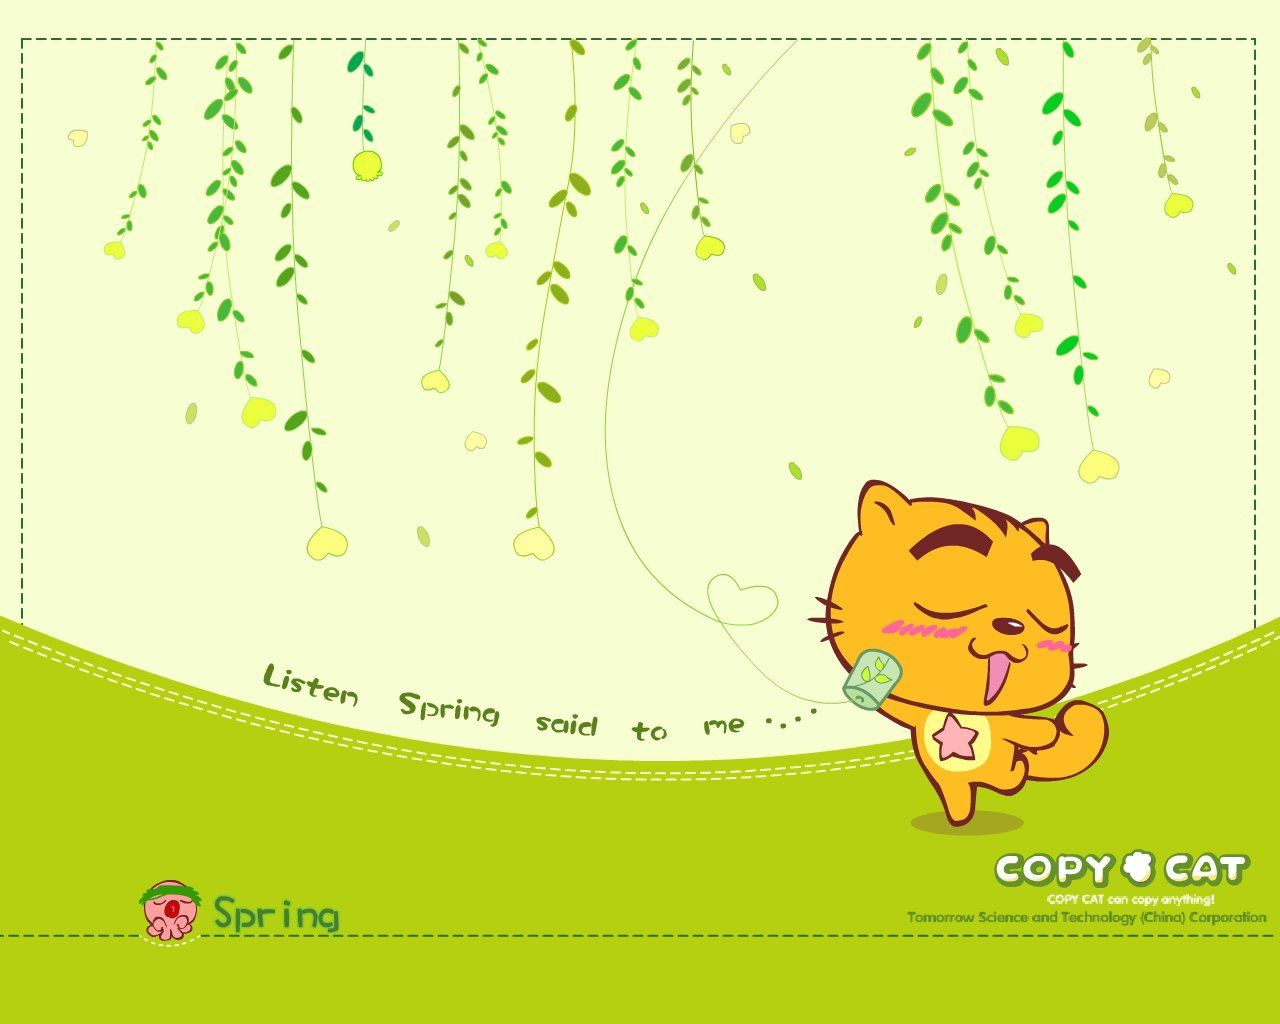 Cartoon Cat Backgrounds  images free download 1280x1024